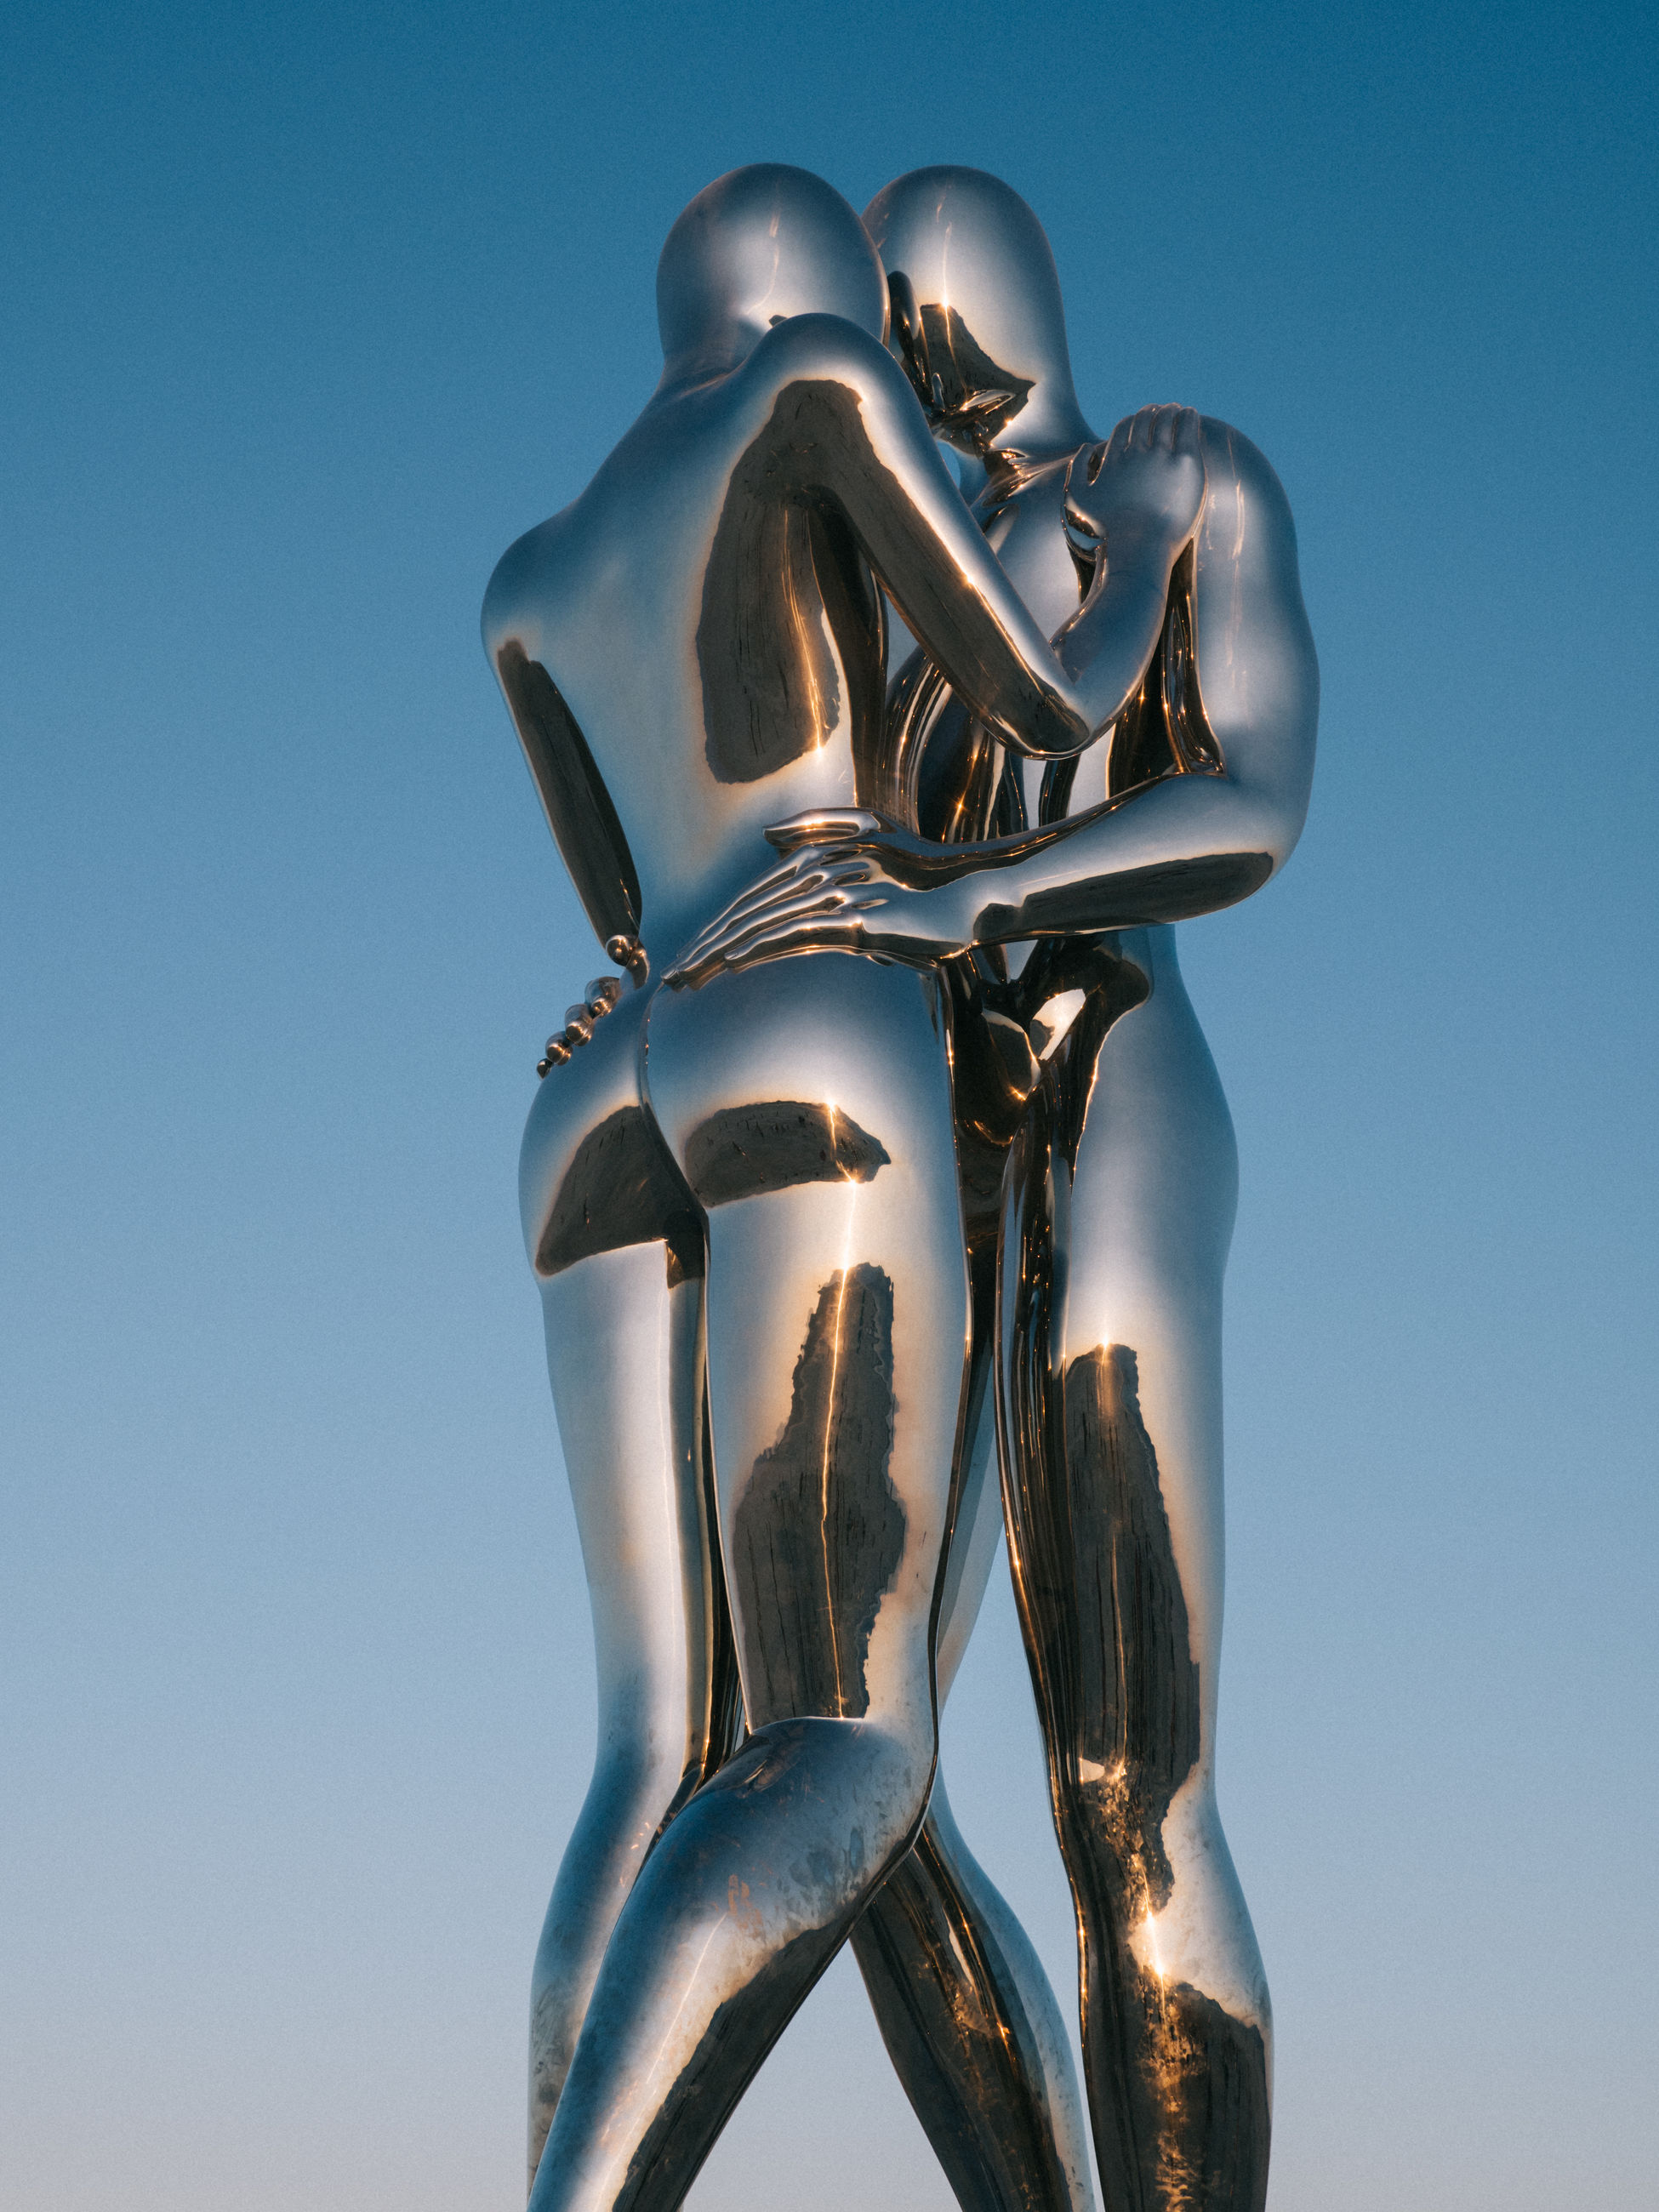 no people, clear sky, low angle view, human representation, sky, representation, metal, blue, sculpture, art and craft, creativity, nature, male likeness, gold colored, female likeness, close-up, statue, craft, day, sunlight, silver colored, blue background